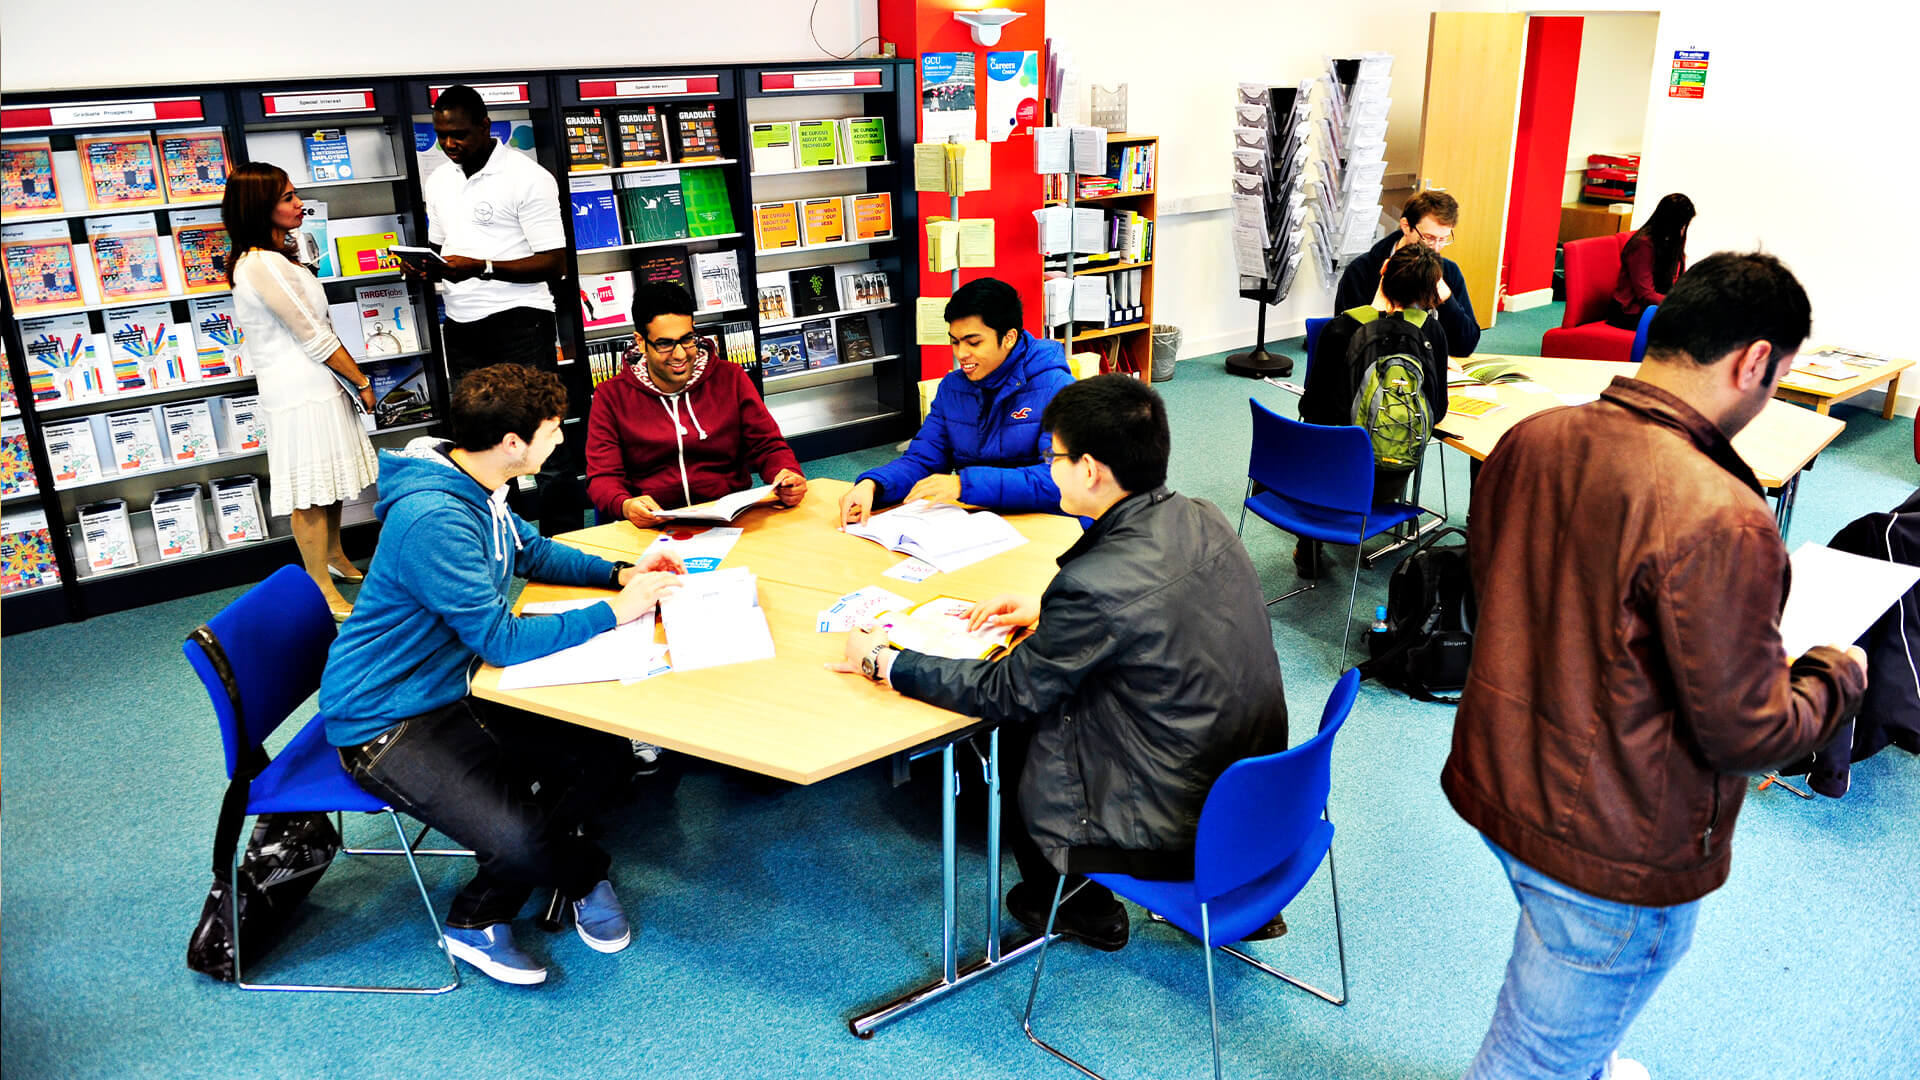 Students studying in one the the many breakout areas on the Glasgow Caledonian University campus